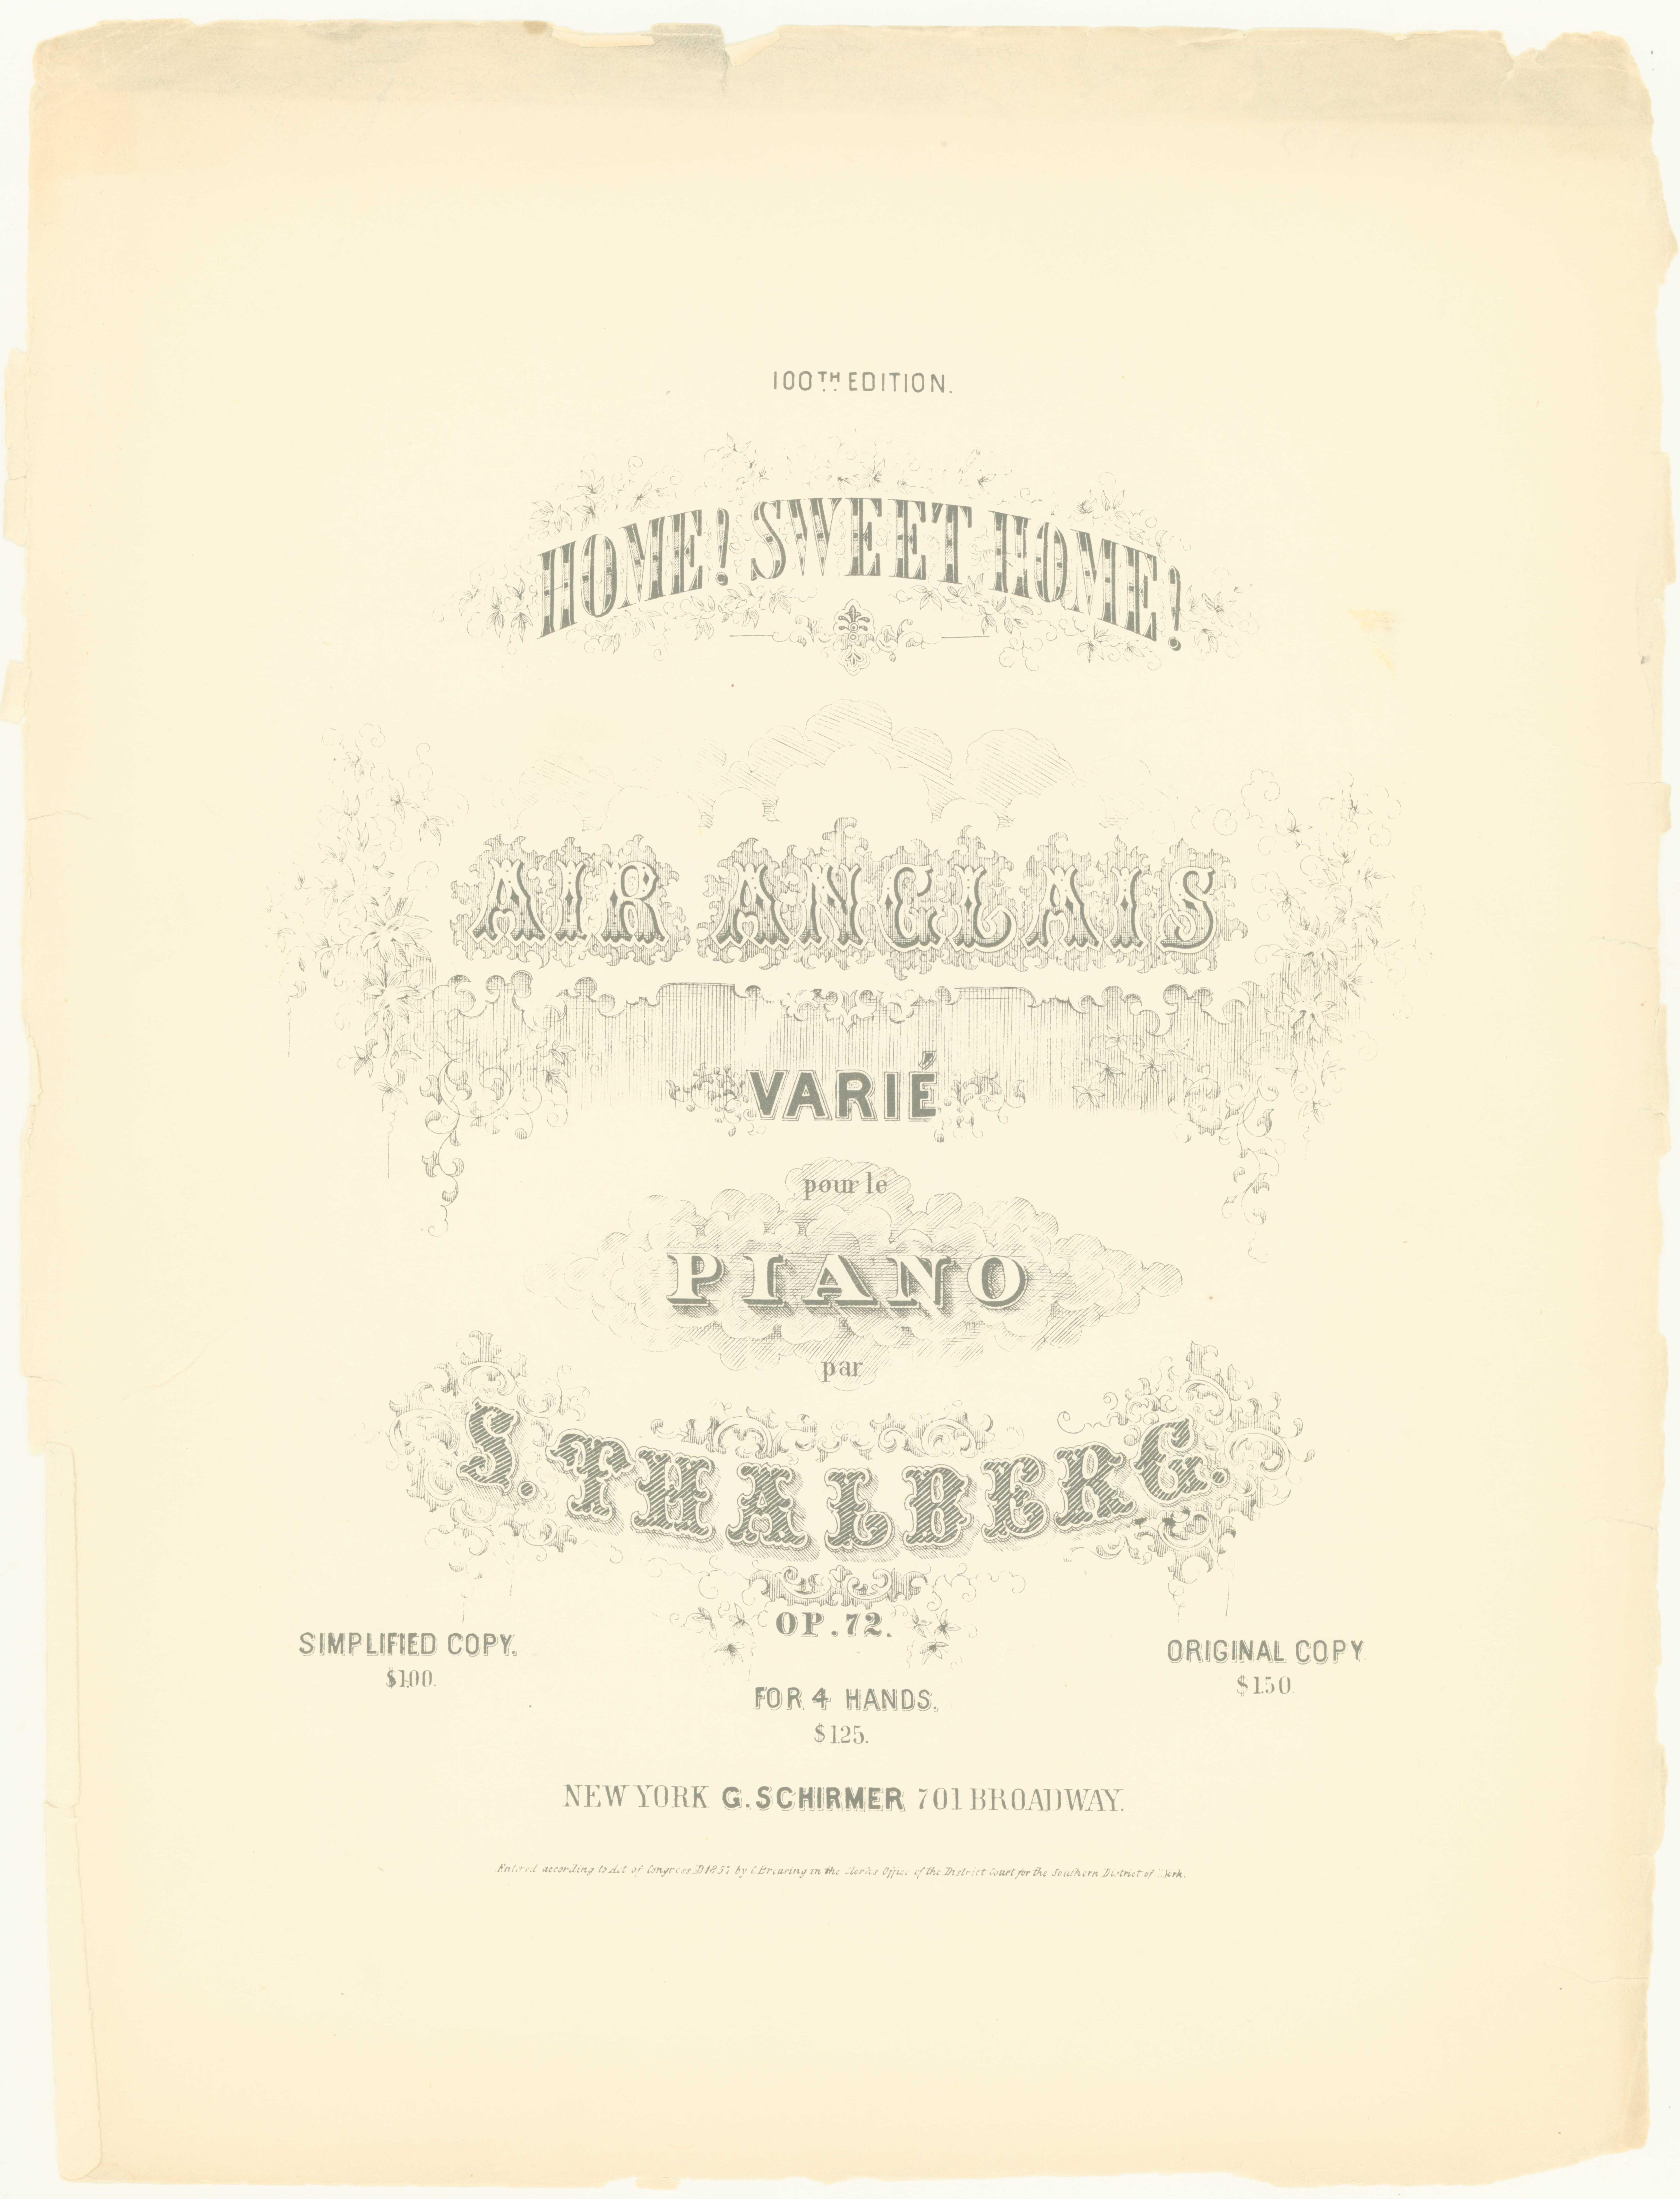 Thalberg, Sigismond - Home! Sweet Home!, Air Anglais Varié Pour Le Piano, Op. 72. 100th Edition. - (6754)